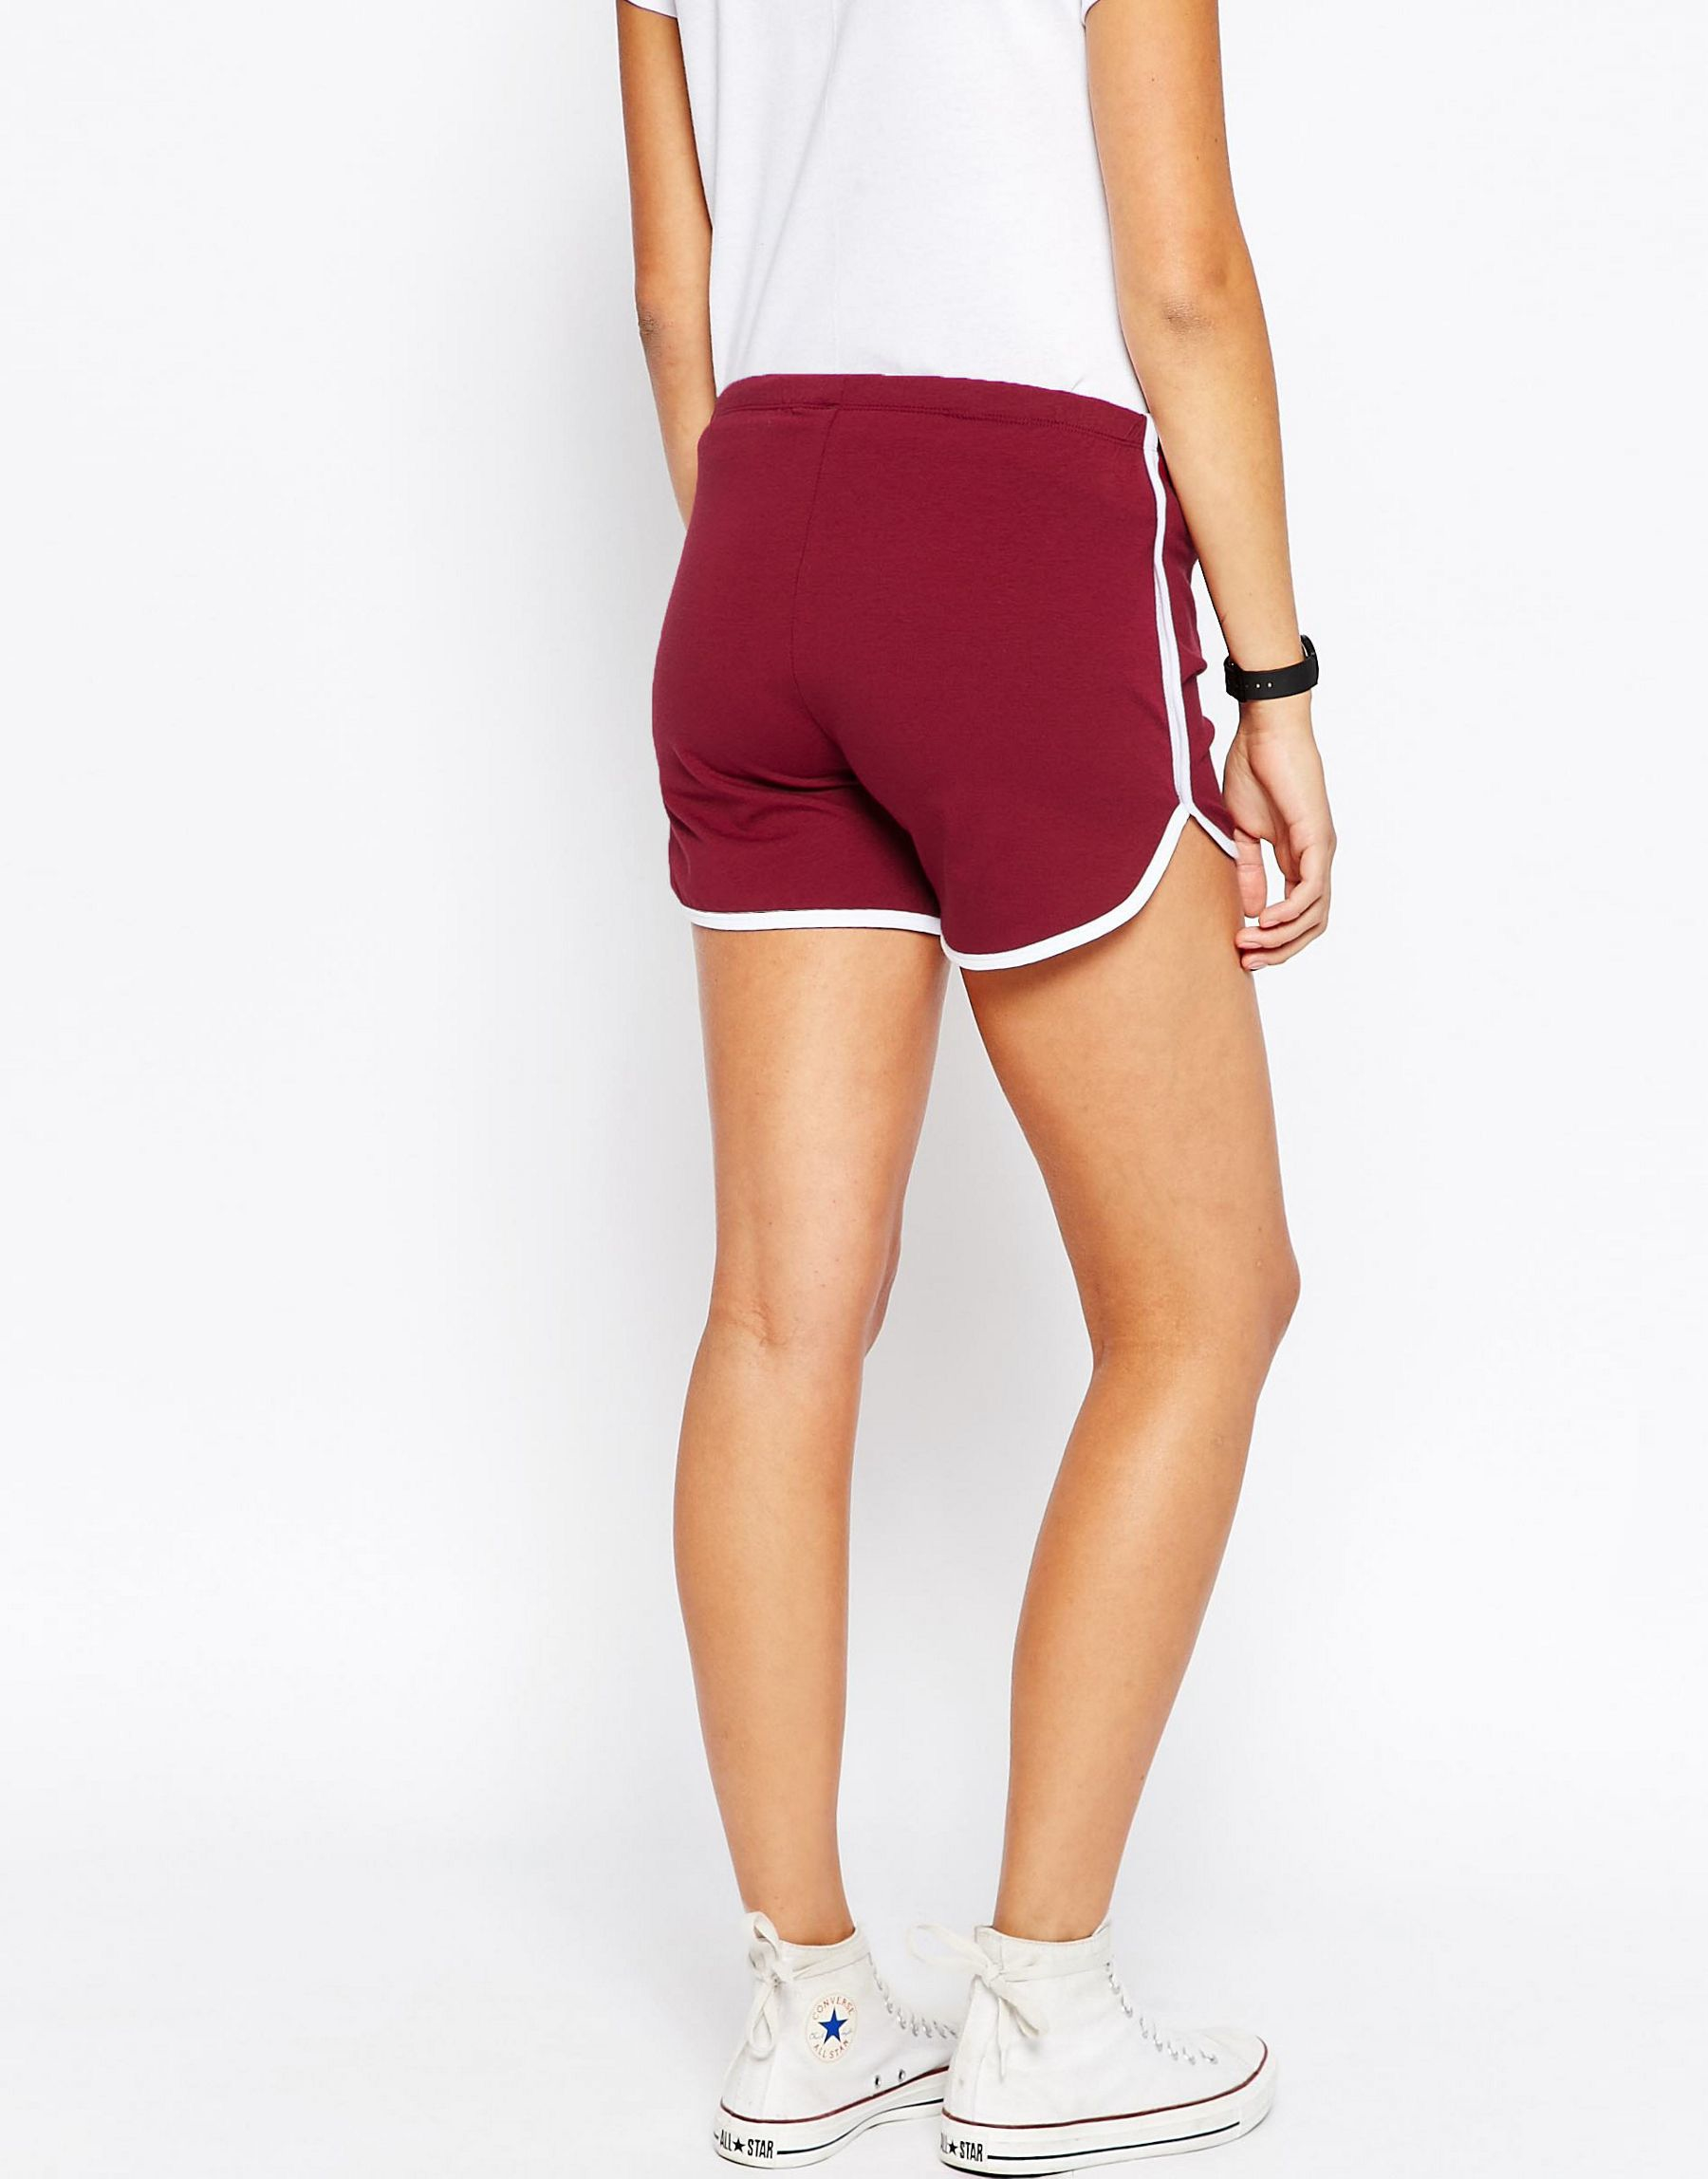 Shop for Maternity Shorts in Maternity. Buy products such as Maternity Full Panel Mini Cuff Denim Short, Maternity Jean Shorts w/ Embroidery Detail at Walmart and save.